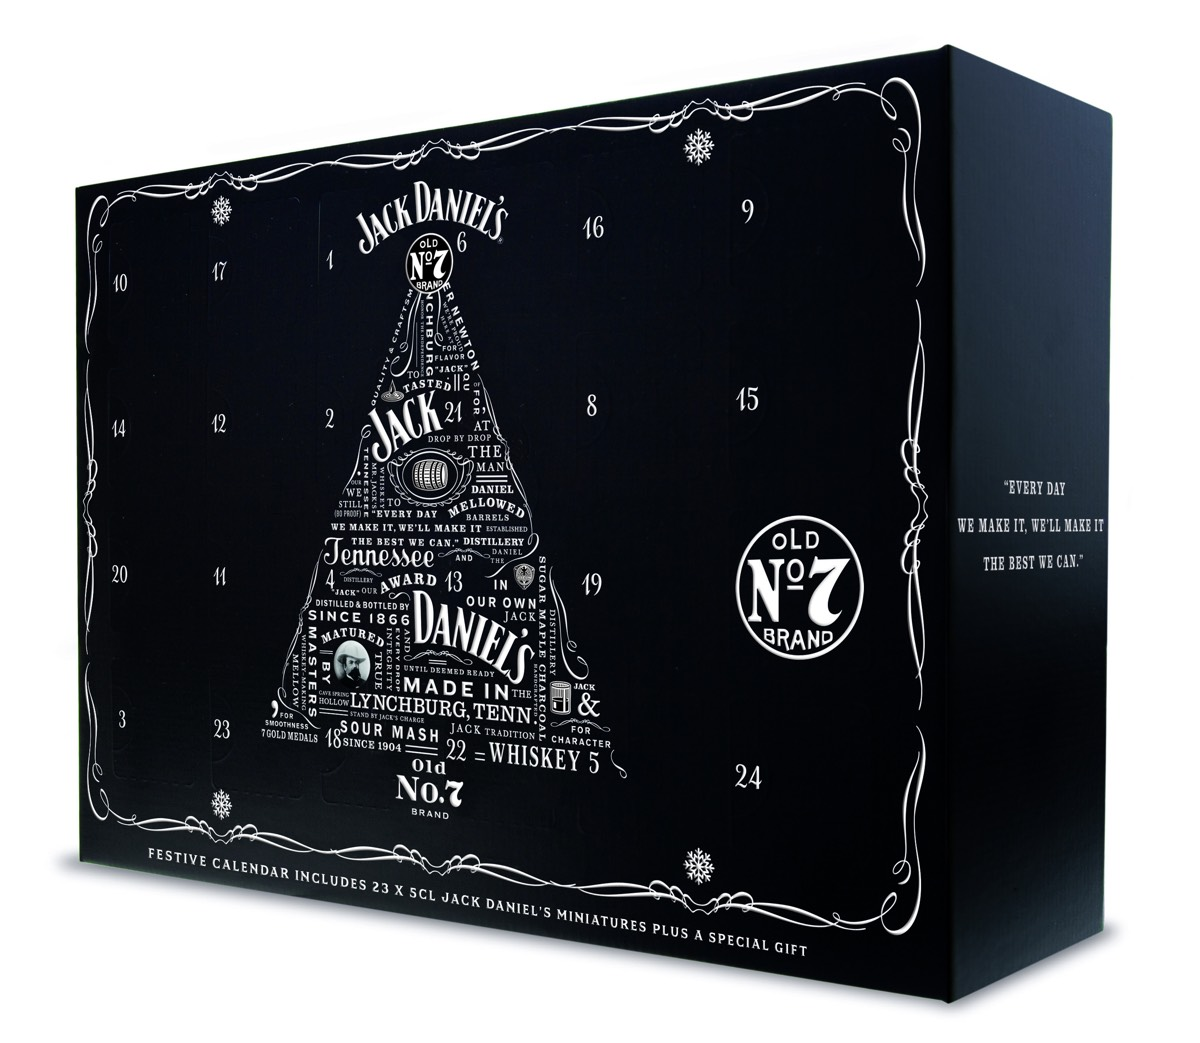 The Jack Daniel's Holiday Calendar contains 23 miniature whiskeys and a hip flask